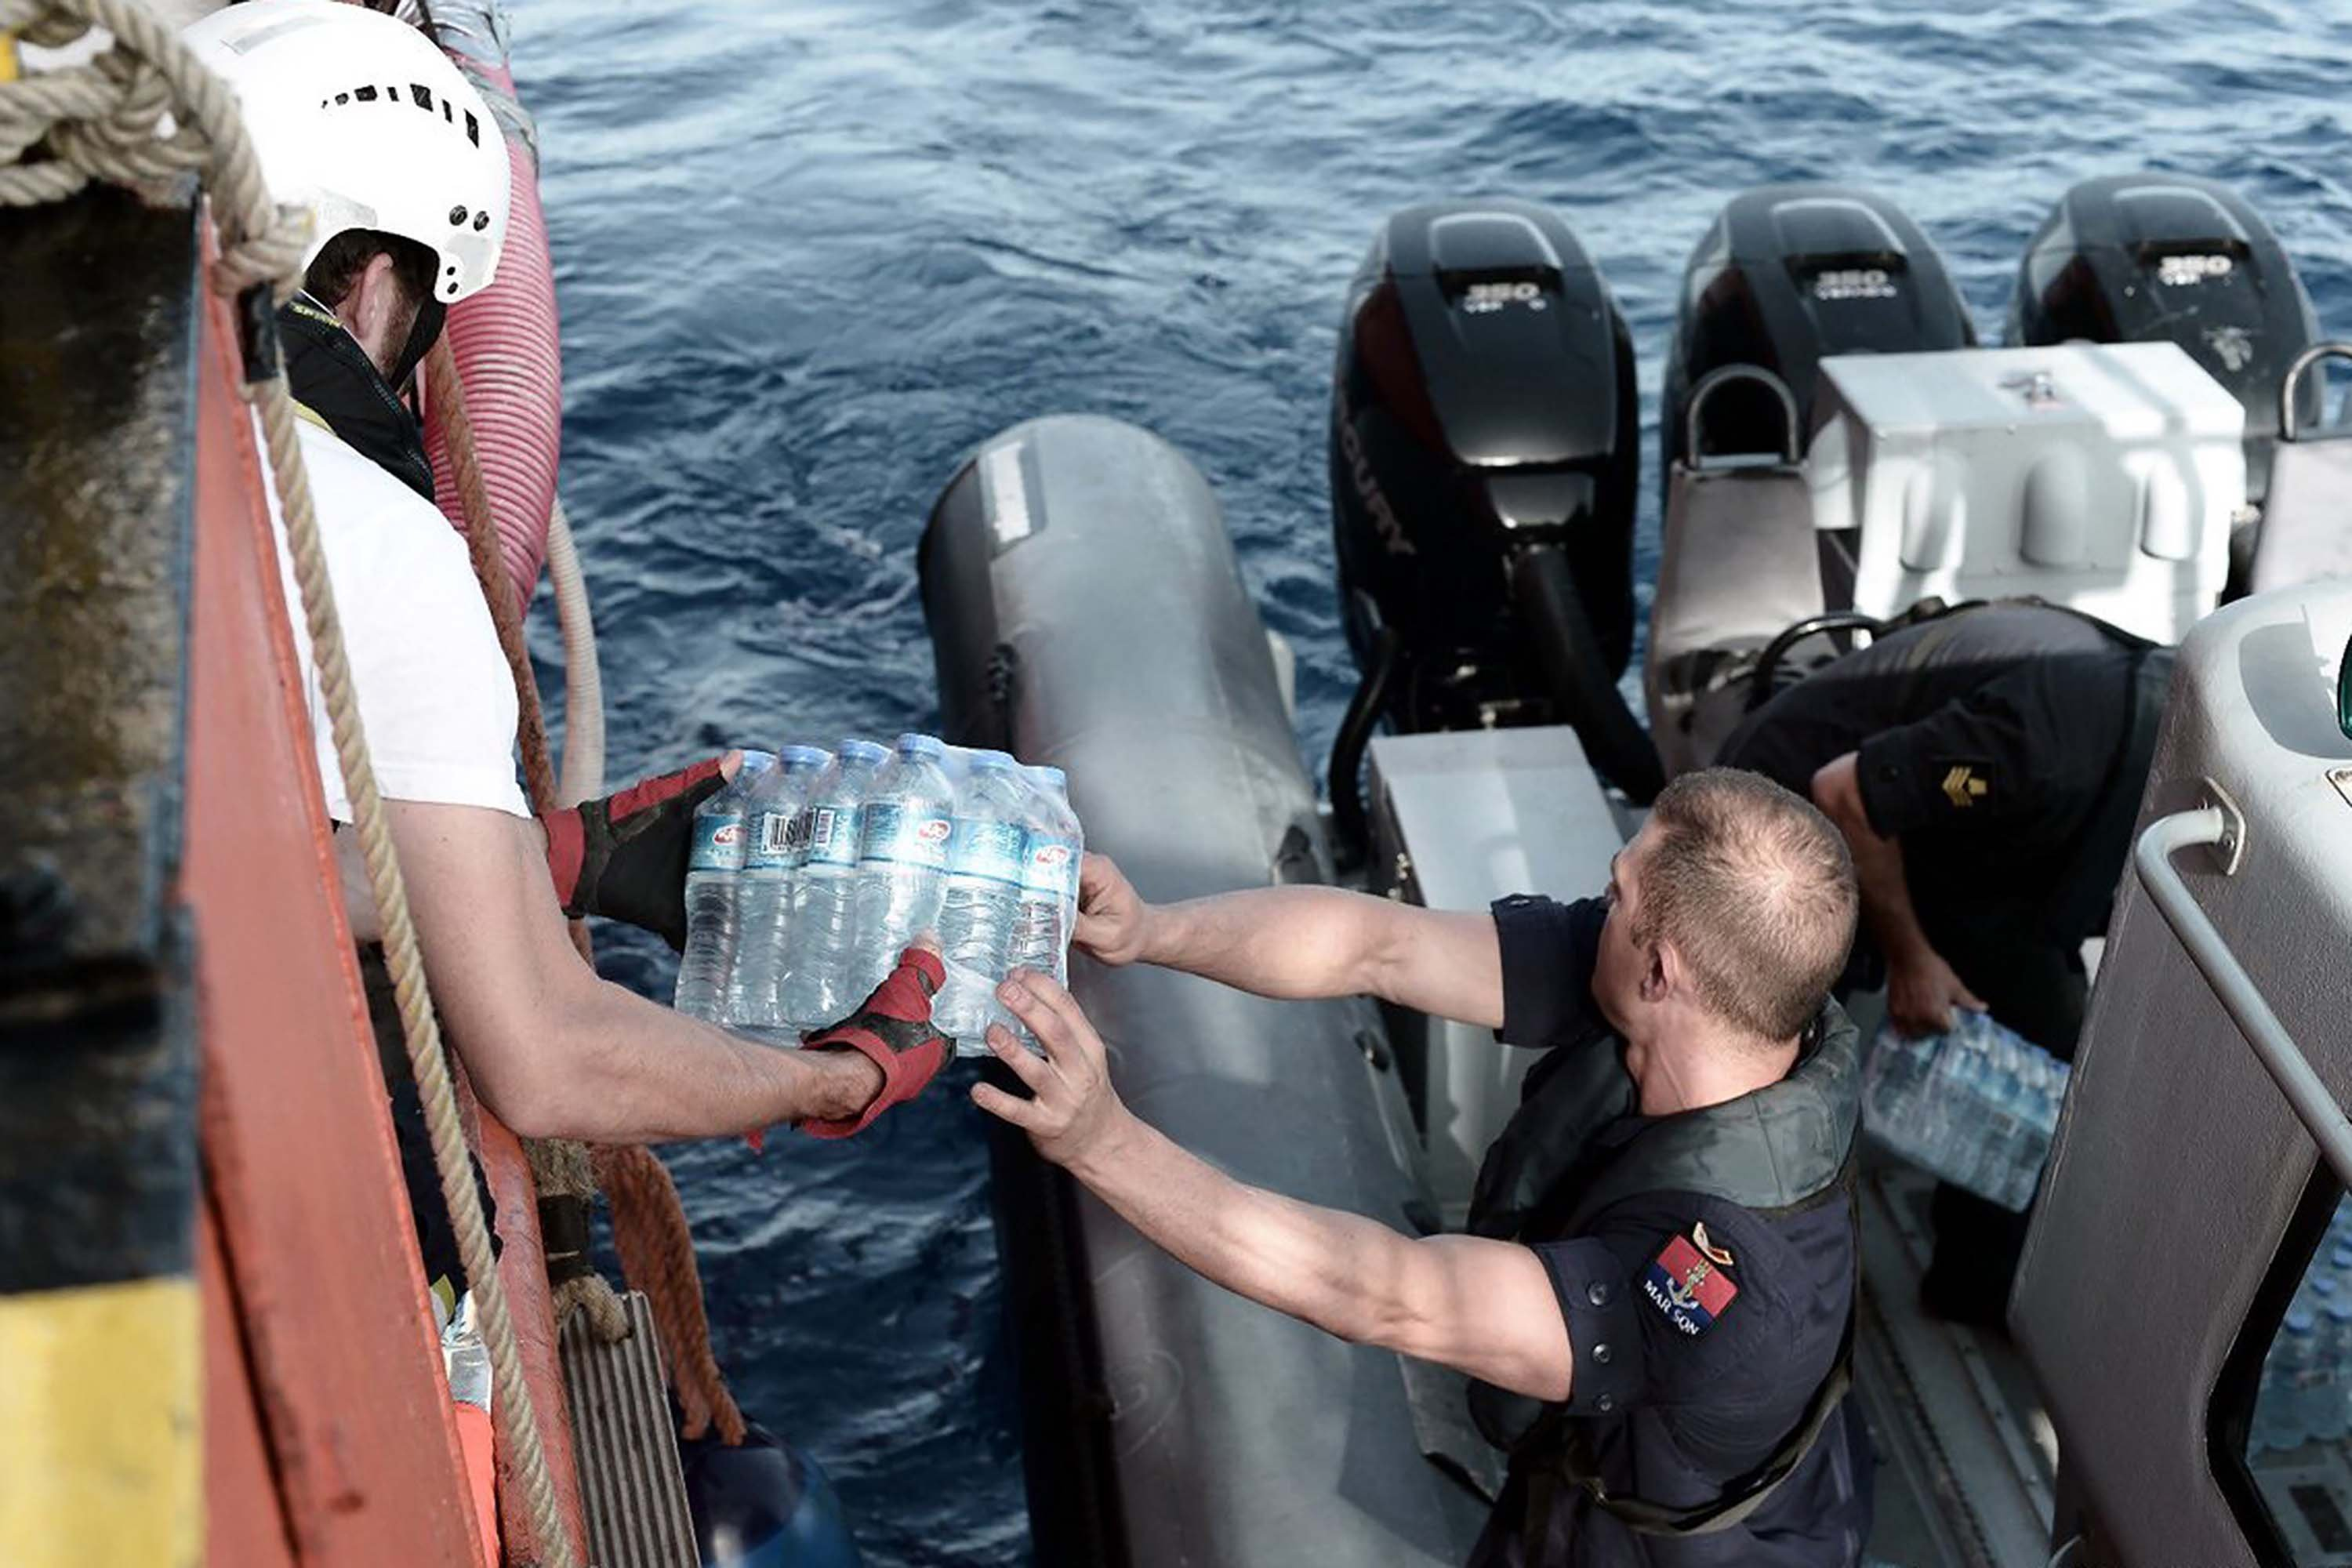 A Maltese maritime officer distributes packs of water to the stranded ship.